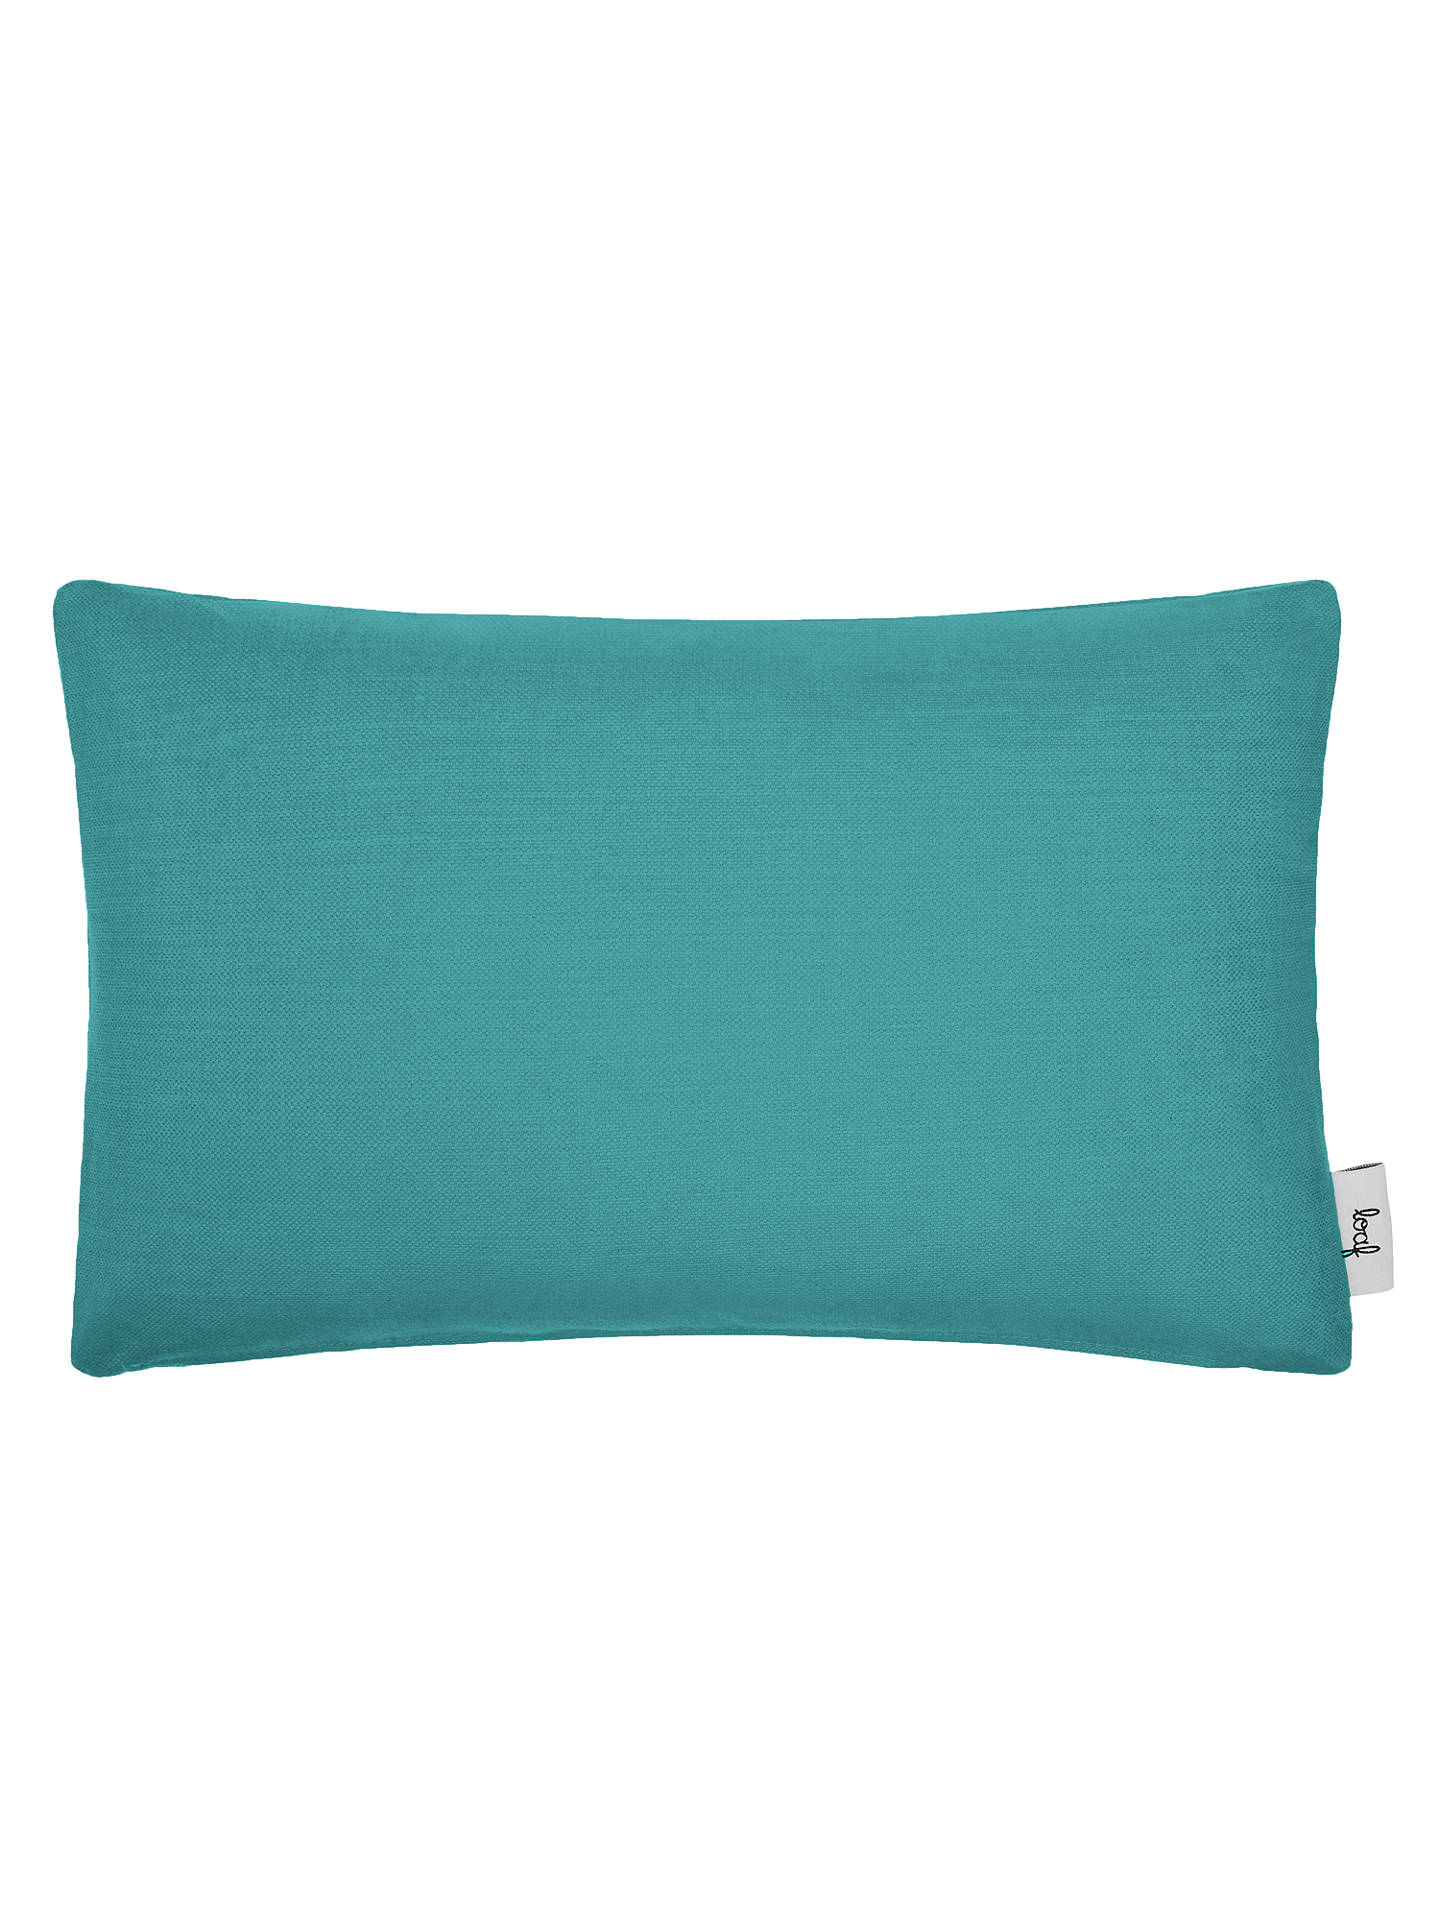 Buy Rectangular Stretch Scatter Cushion by Loaf at John Lewis, Brushed Cotton Peacock Online at johnlewis.com